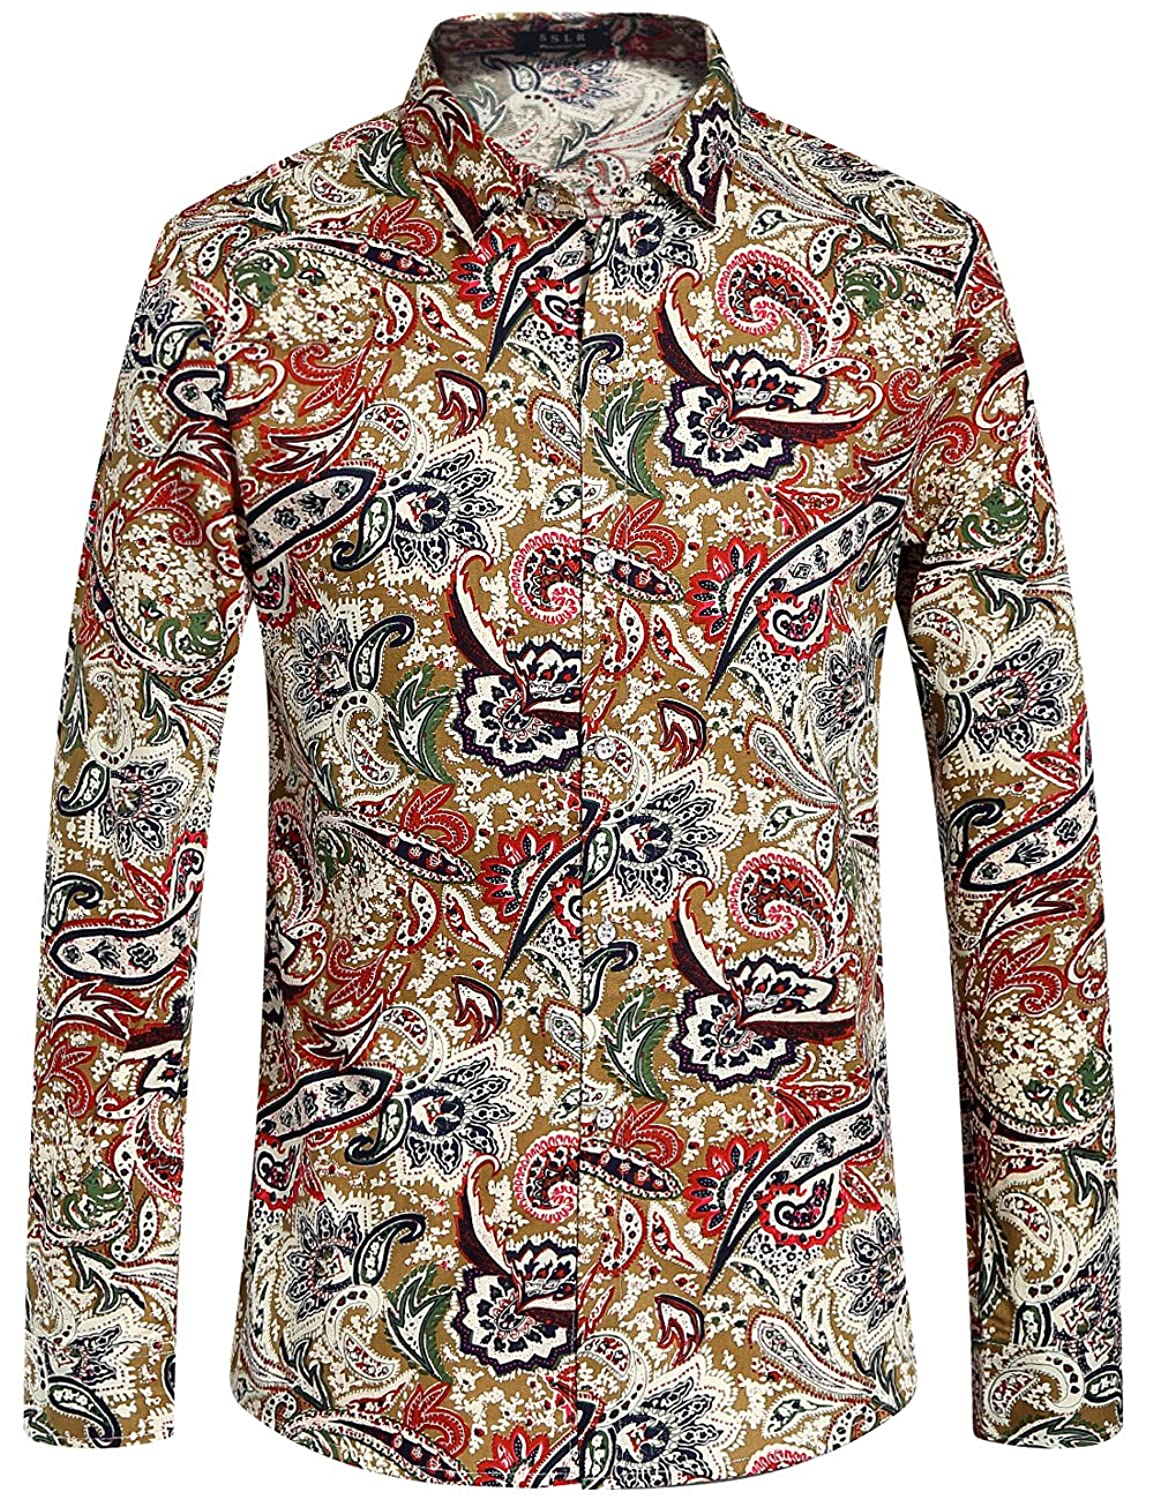 1960s Men's Clothing, 70s Men's Fashion SSLR Mens Paisley Cotton Casual Button Down Long Sleeve Shirt $27.00 AT vintagedancer.com